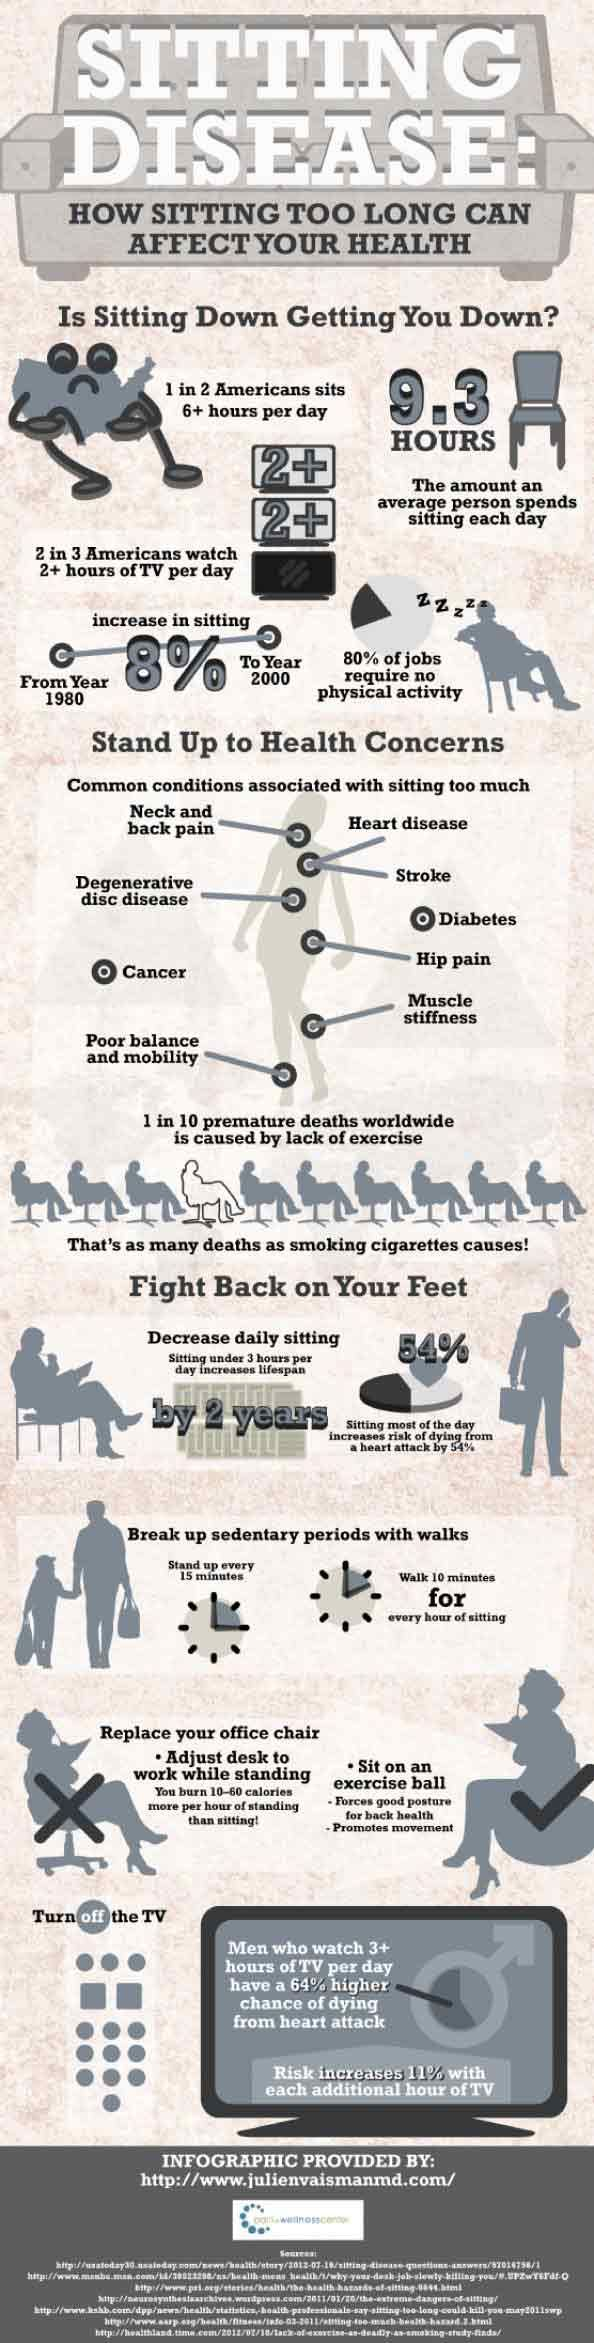 Sitting is killing you! If you sit for long periods, then you need to read this!  #infographic #health #sitting_infographic